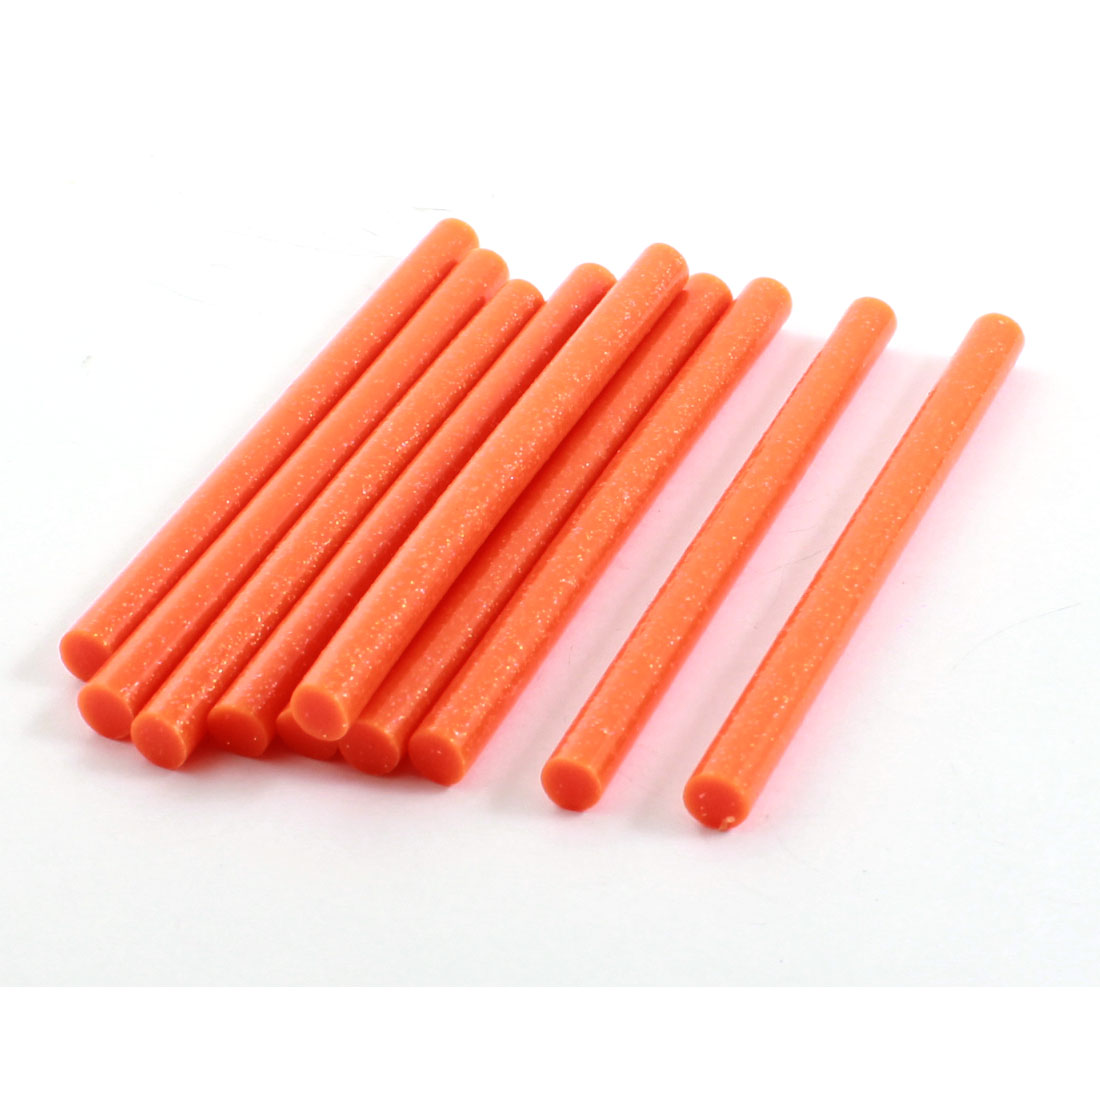 "10Pcs Orange Glitter Electric Tool Heating Gun Hot Melt Glue Adhesive Stick 0.28"" x 4"""